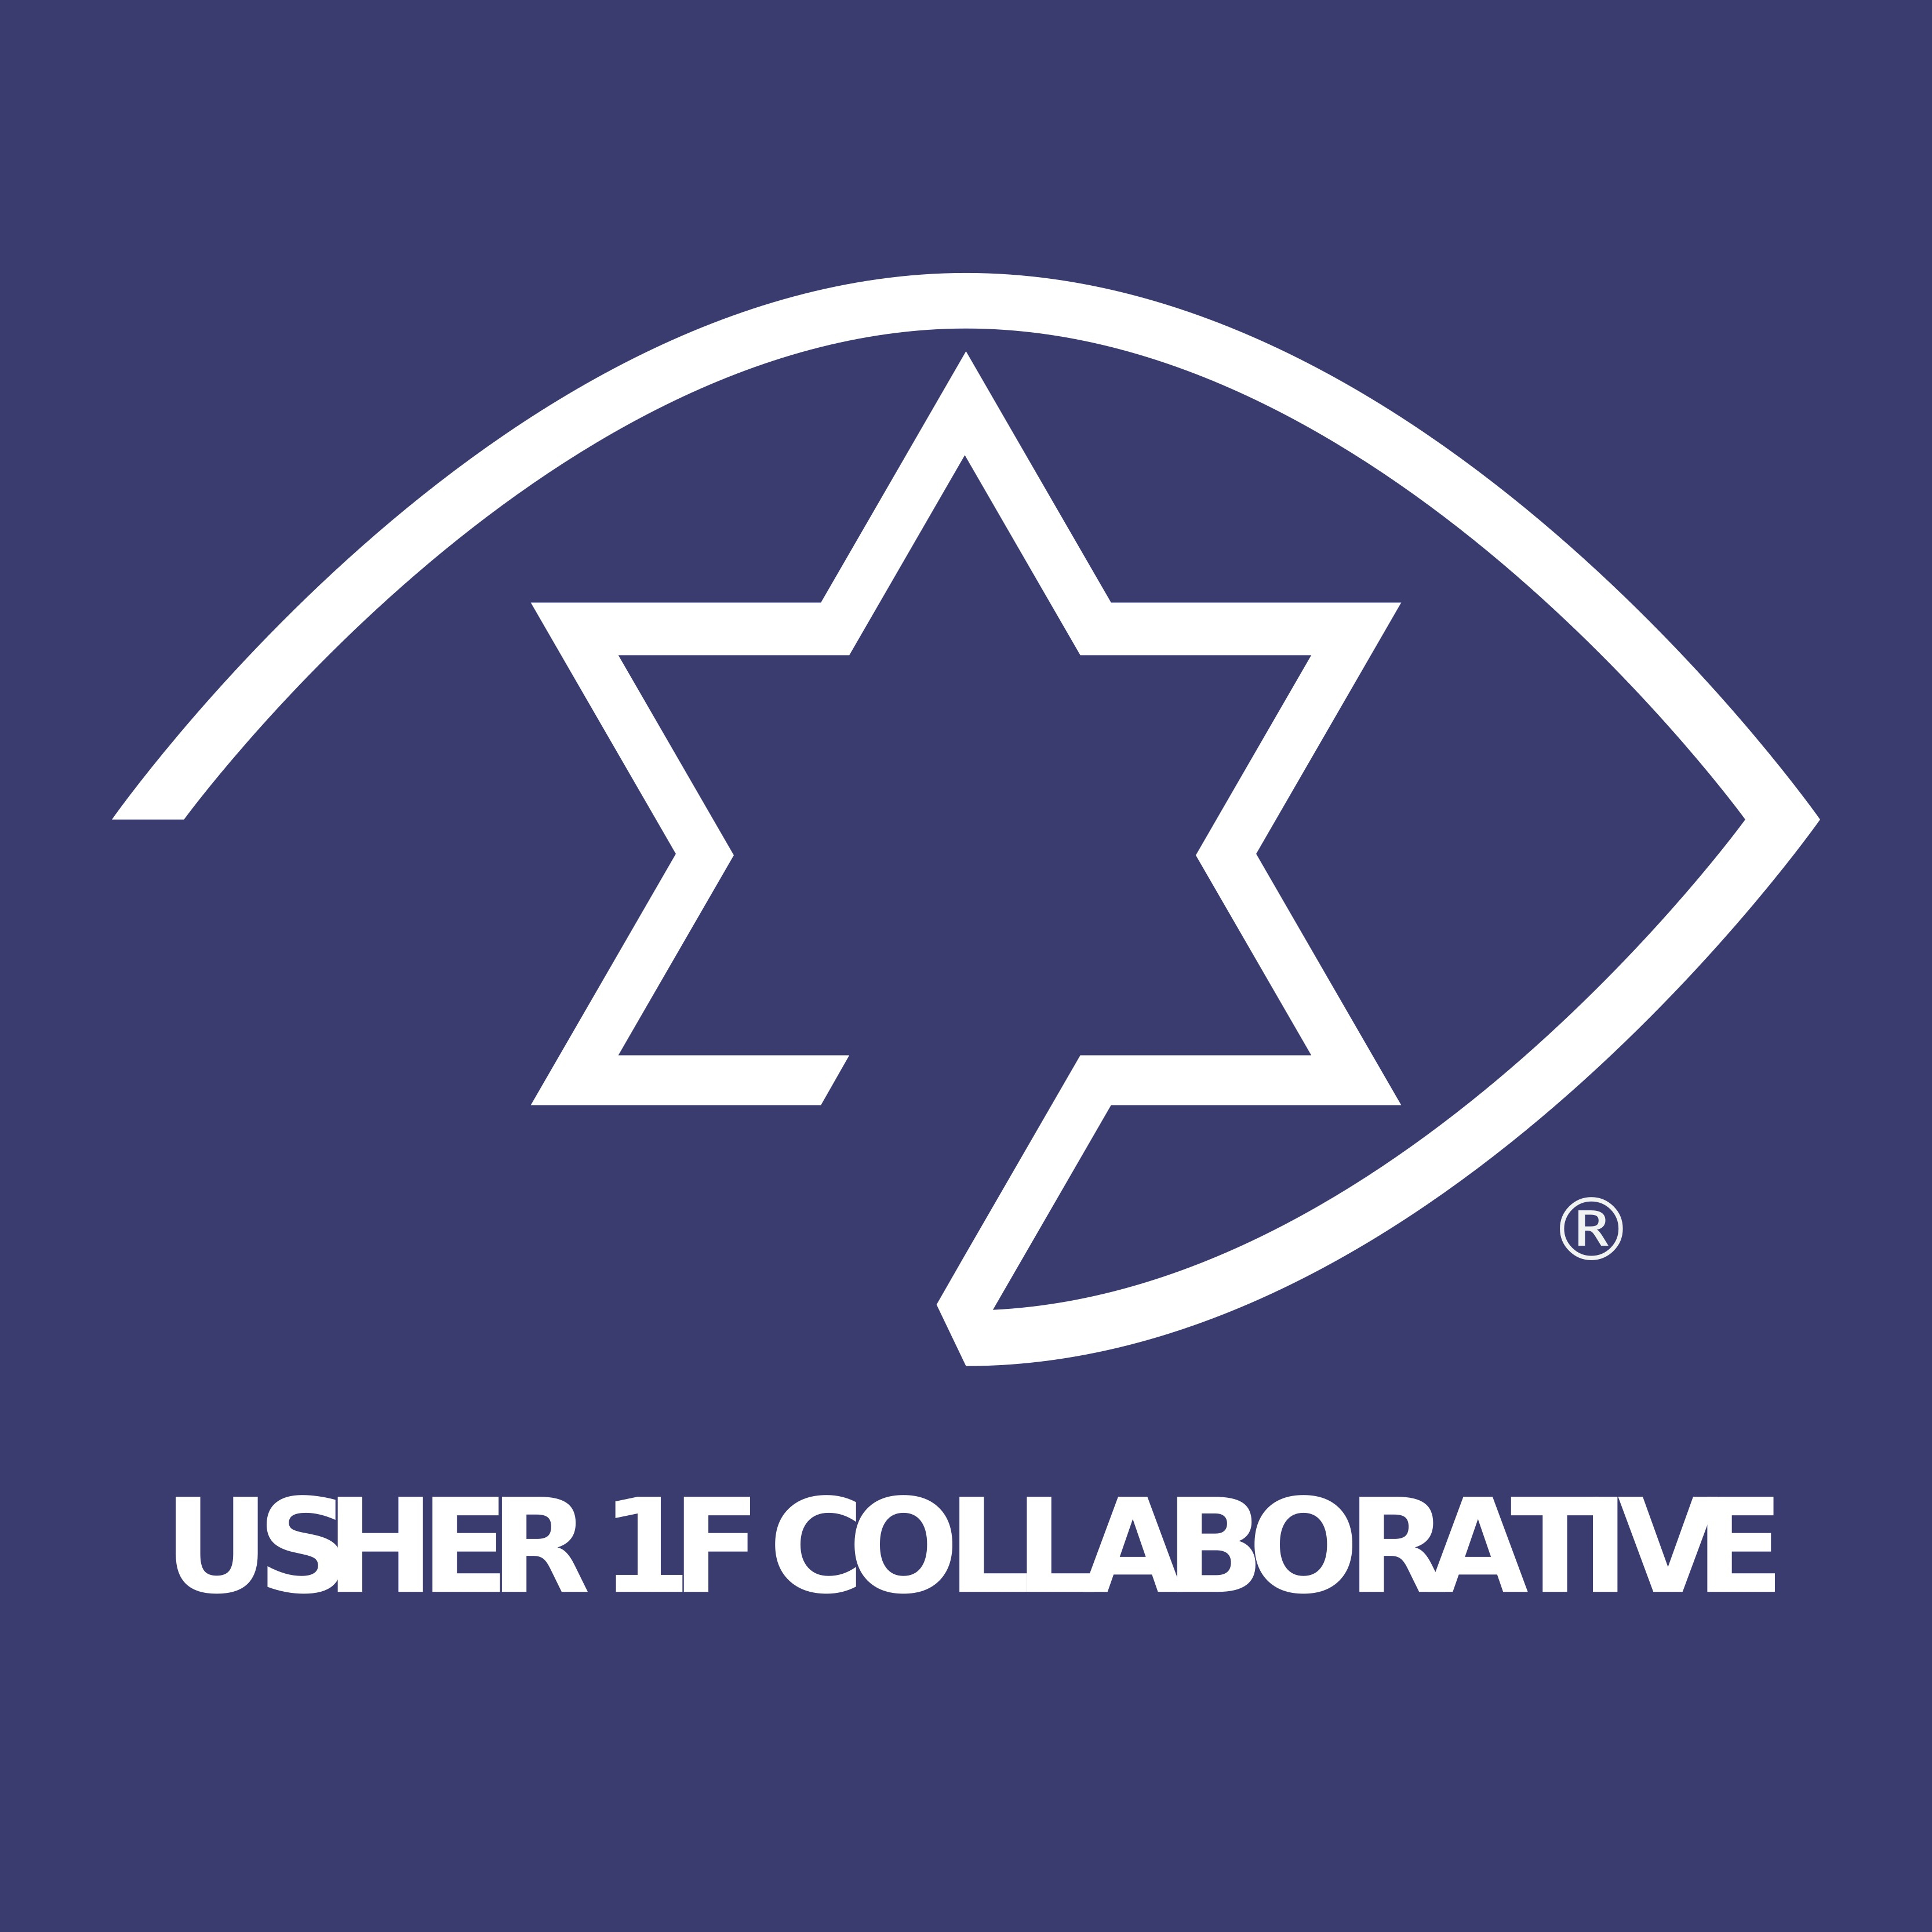 Meet our USH Partner: Usher 1F Collaborative